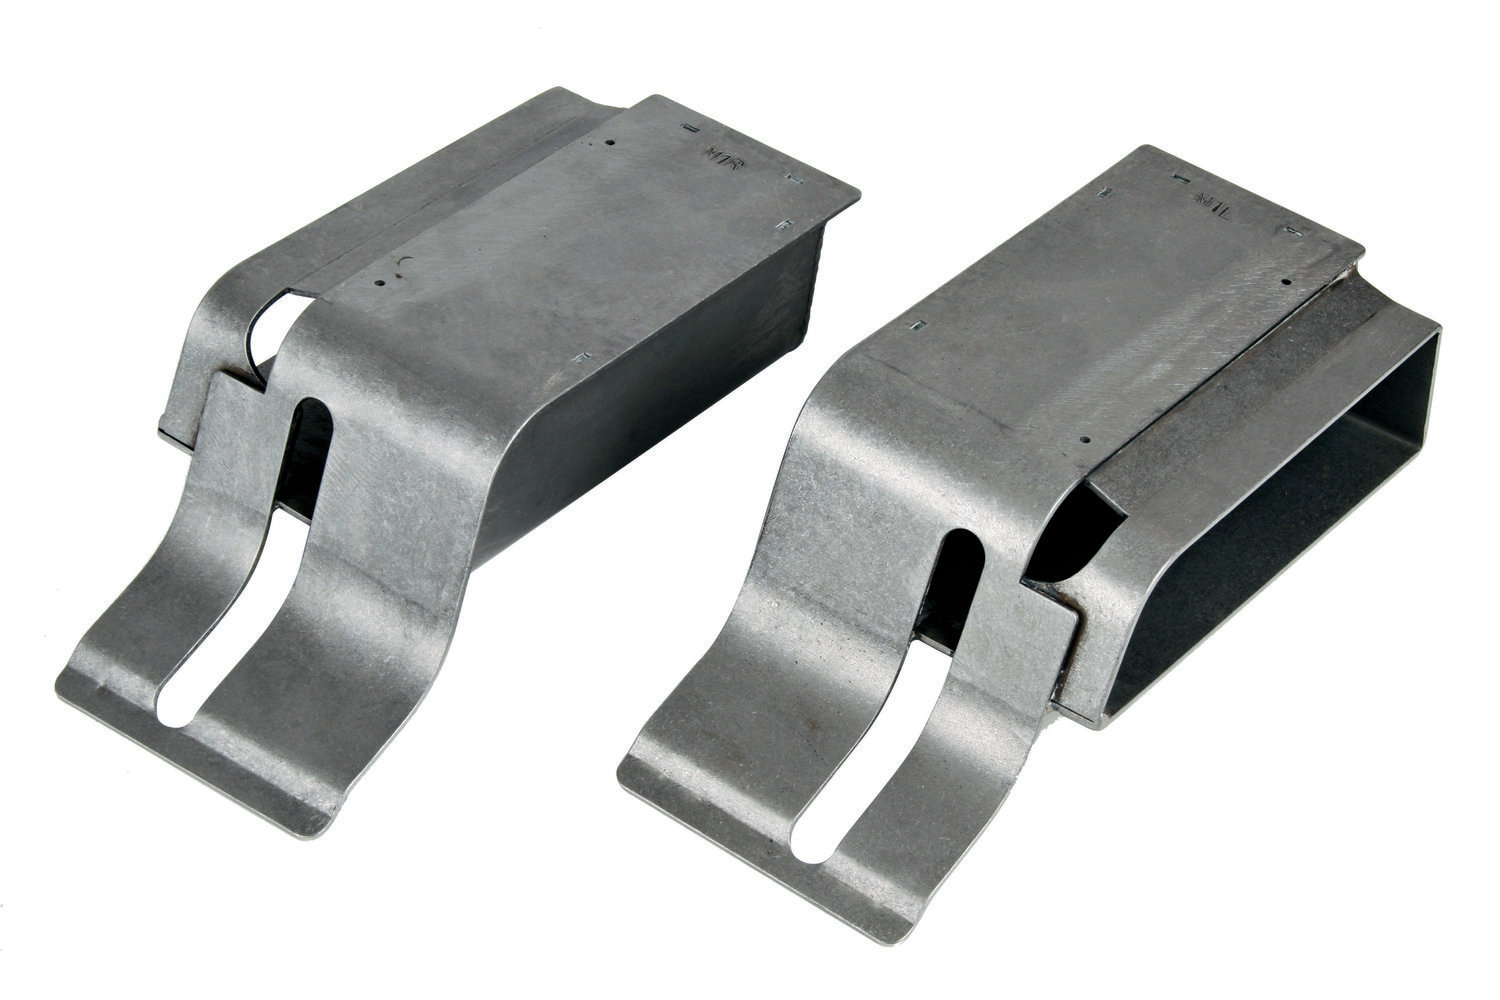 2. The rear of the DSE subframe connectors attach to DSE torque boxes that are included with the QuadraLink rear suspension system. The torque boxes are available separately (PN 010107) for Mustangs that aren't equipped with the QuadraLink suspension.